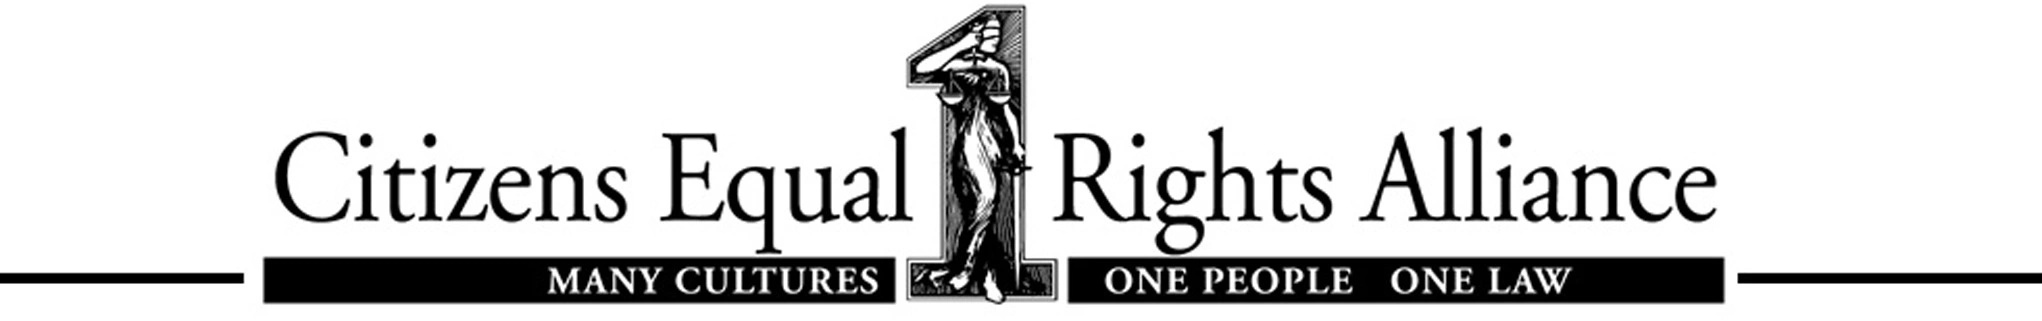 Citizens Equal Rights Alliance